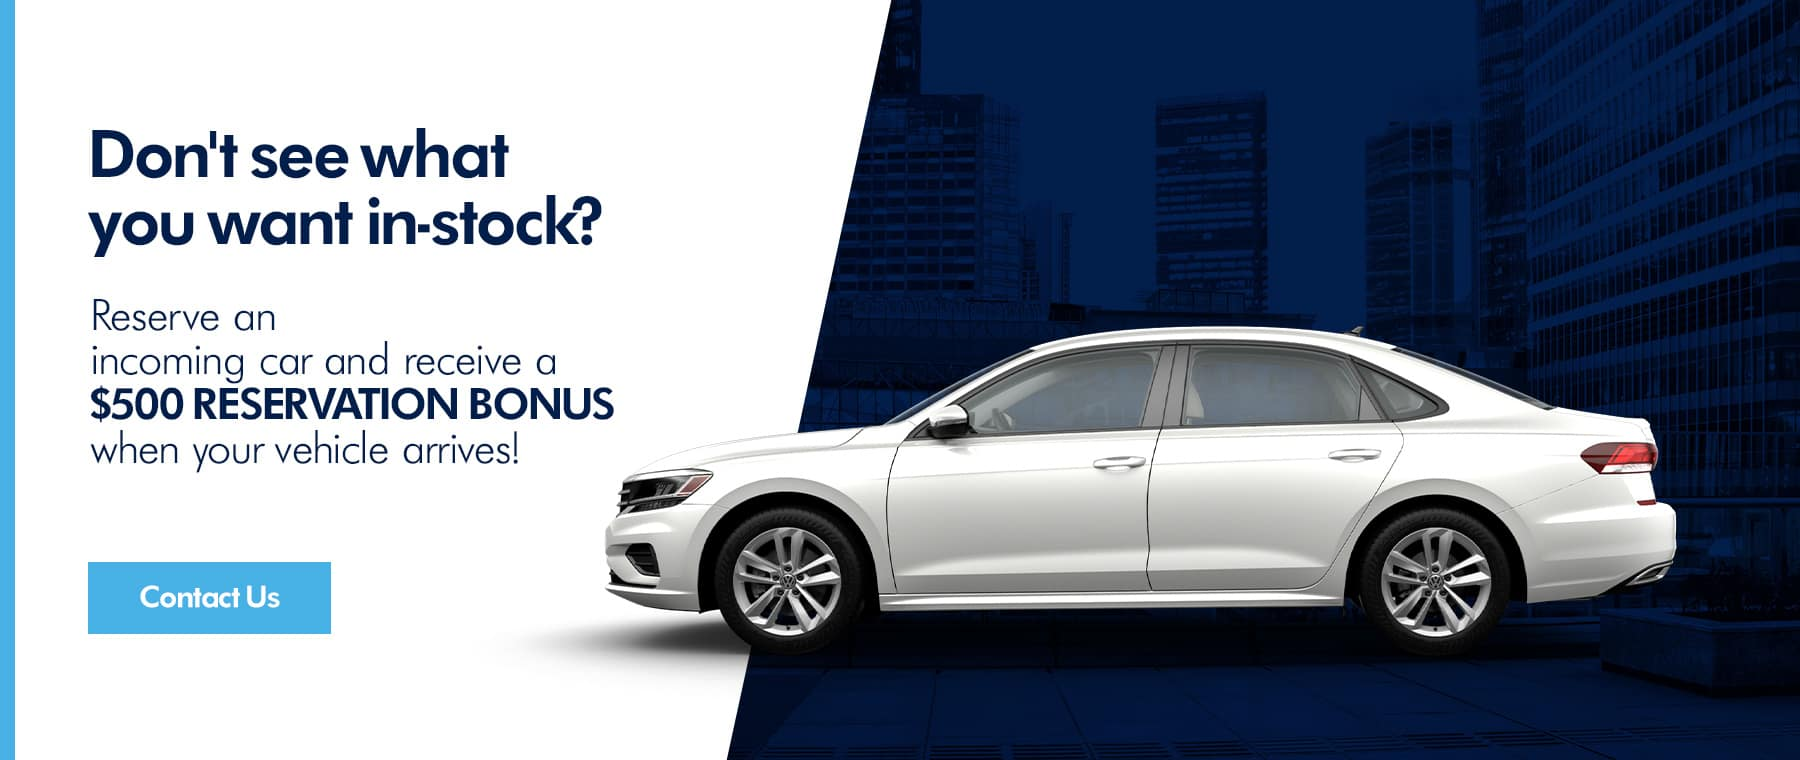 Don't see what you want in-stock? Reserve an incoming car and receive a $500 RESERVATION BONUS when your vehicle arrives